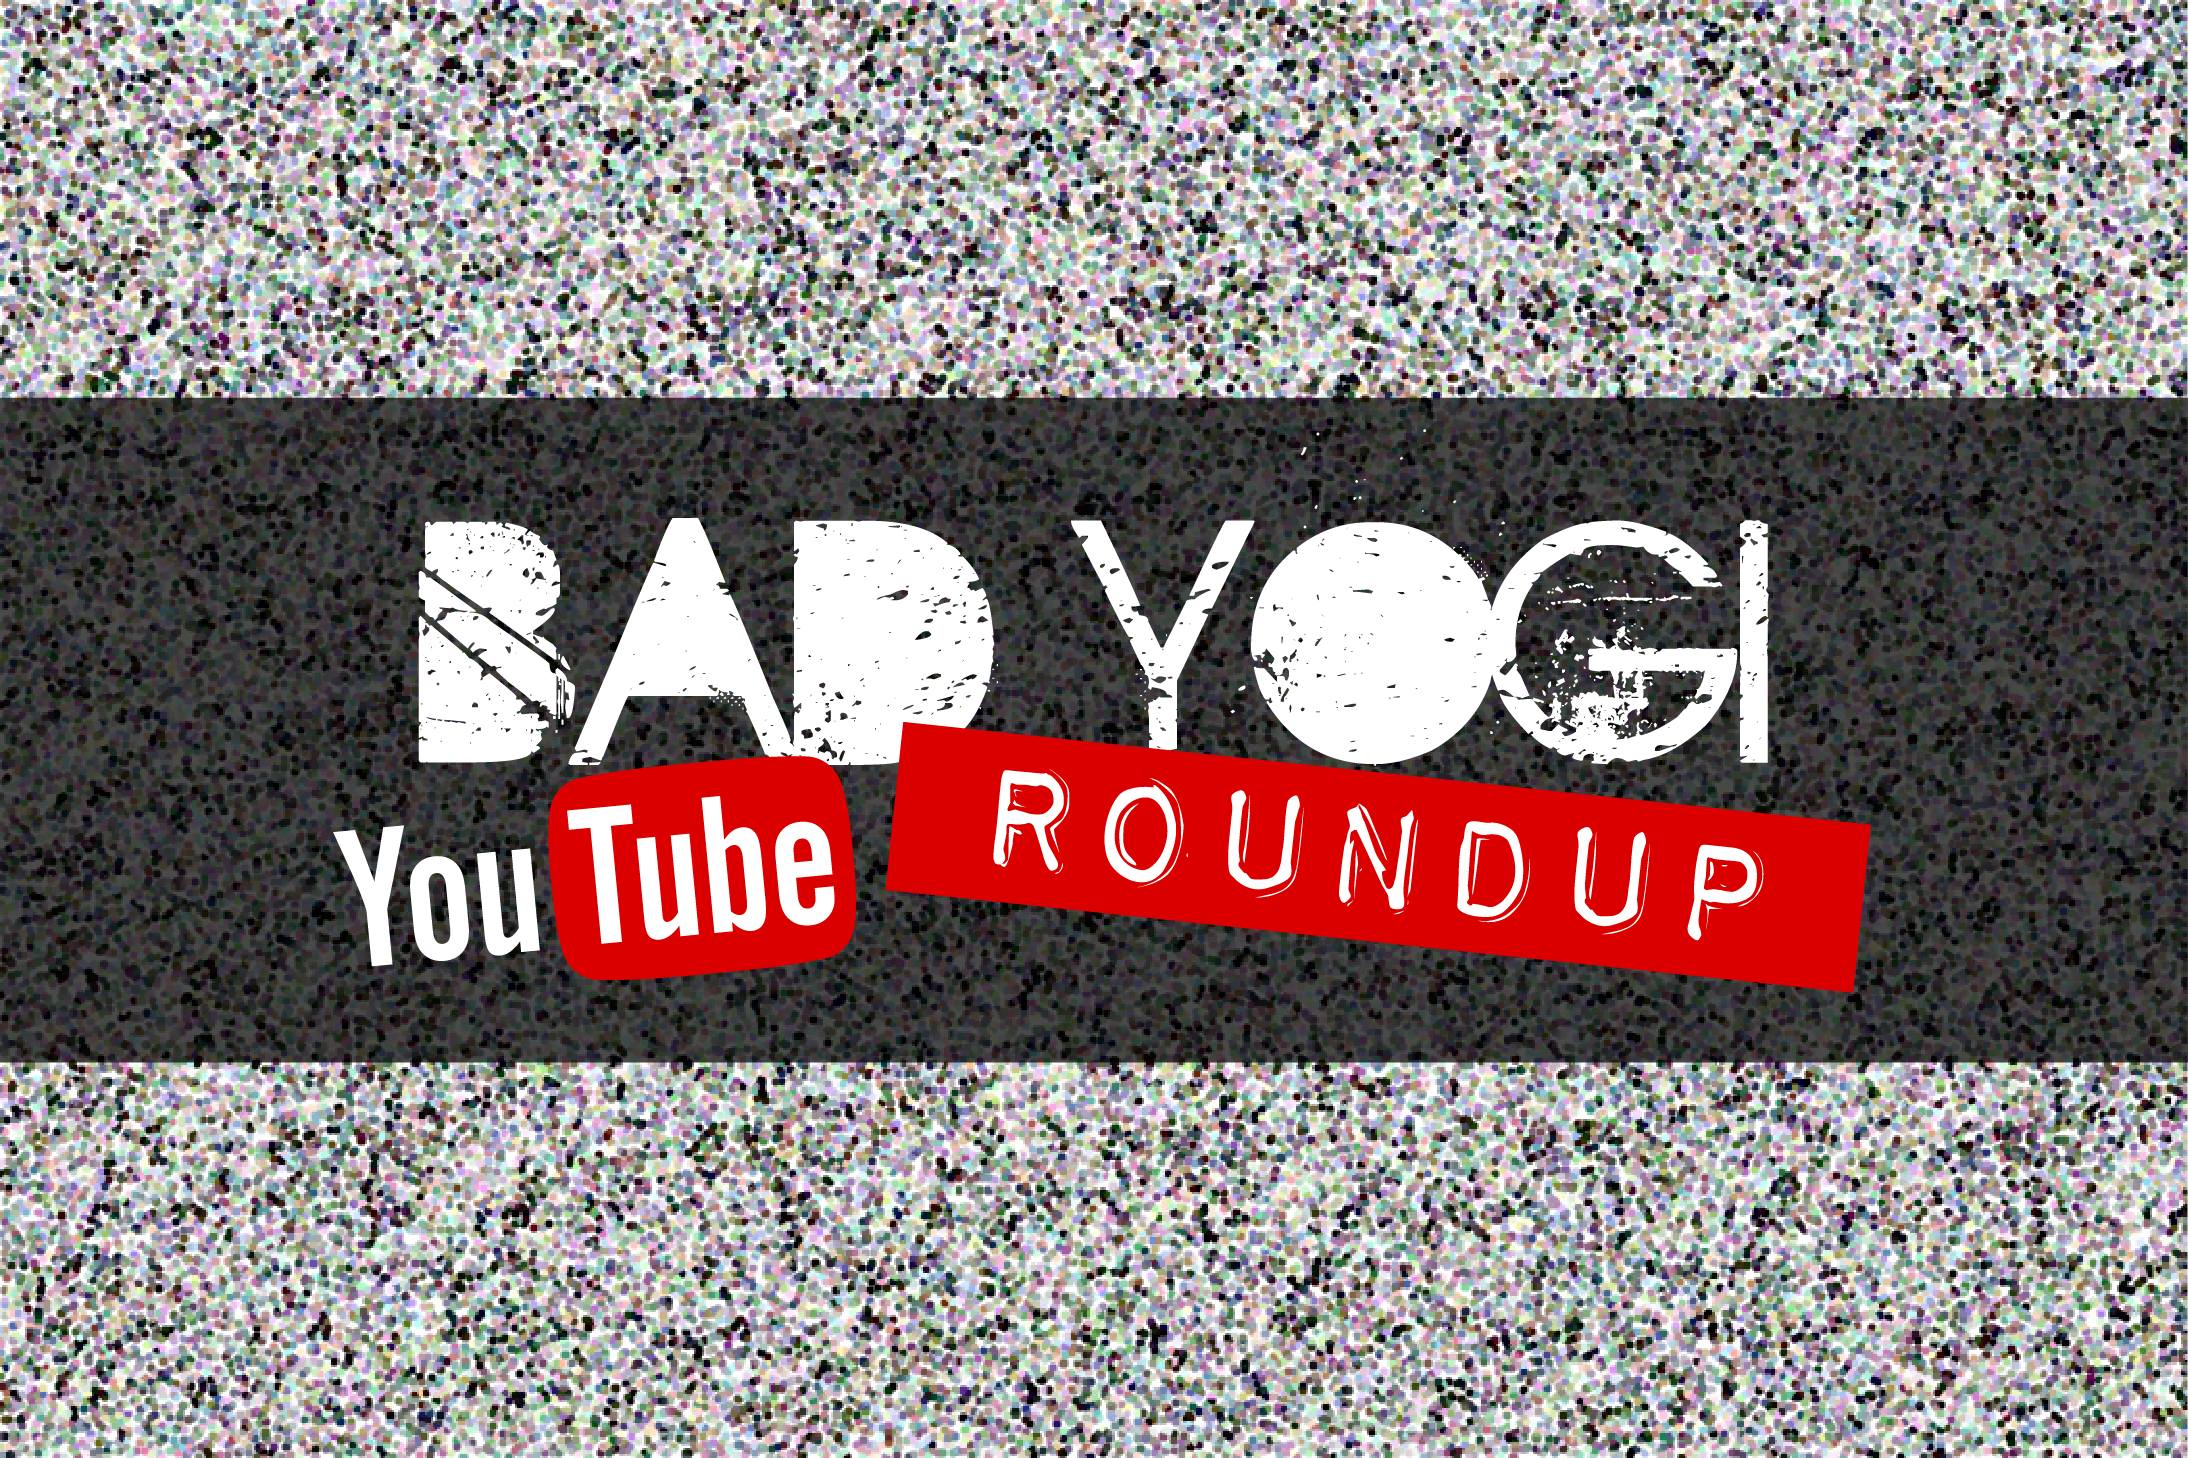 bad yogi youtube roundup iii bad yogi magazine